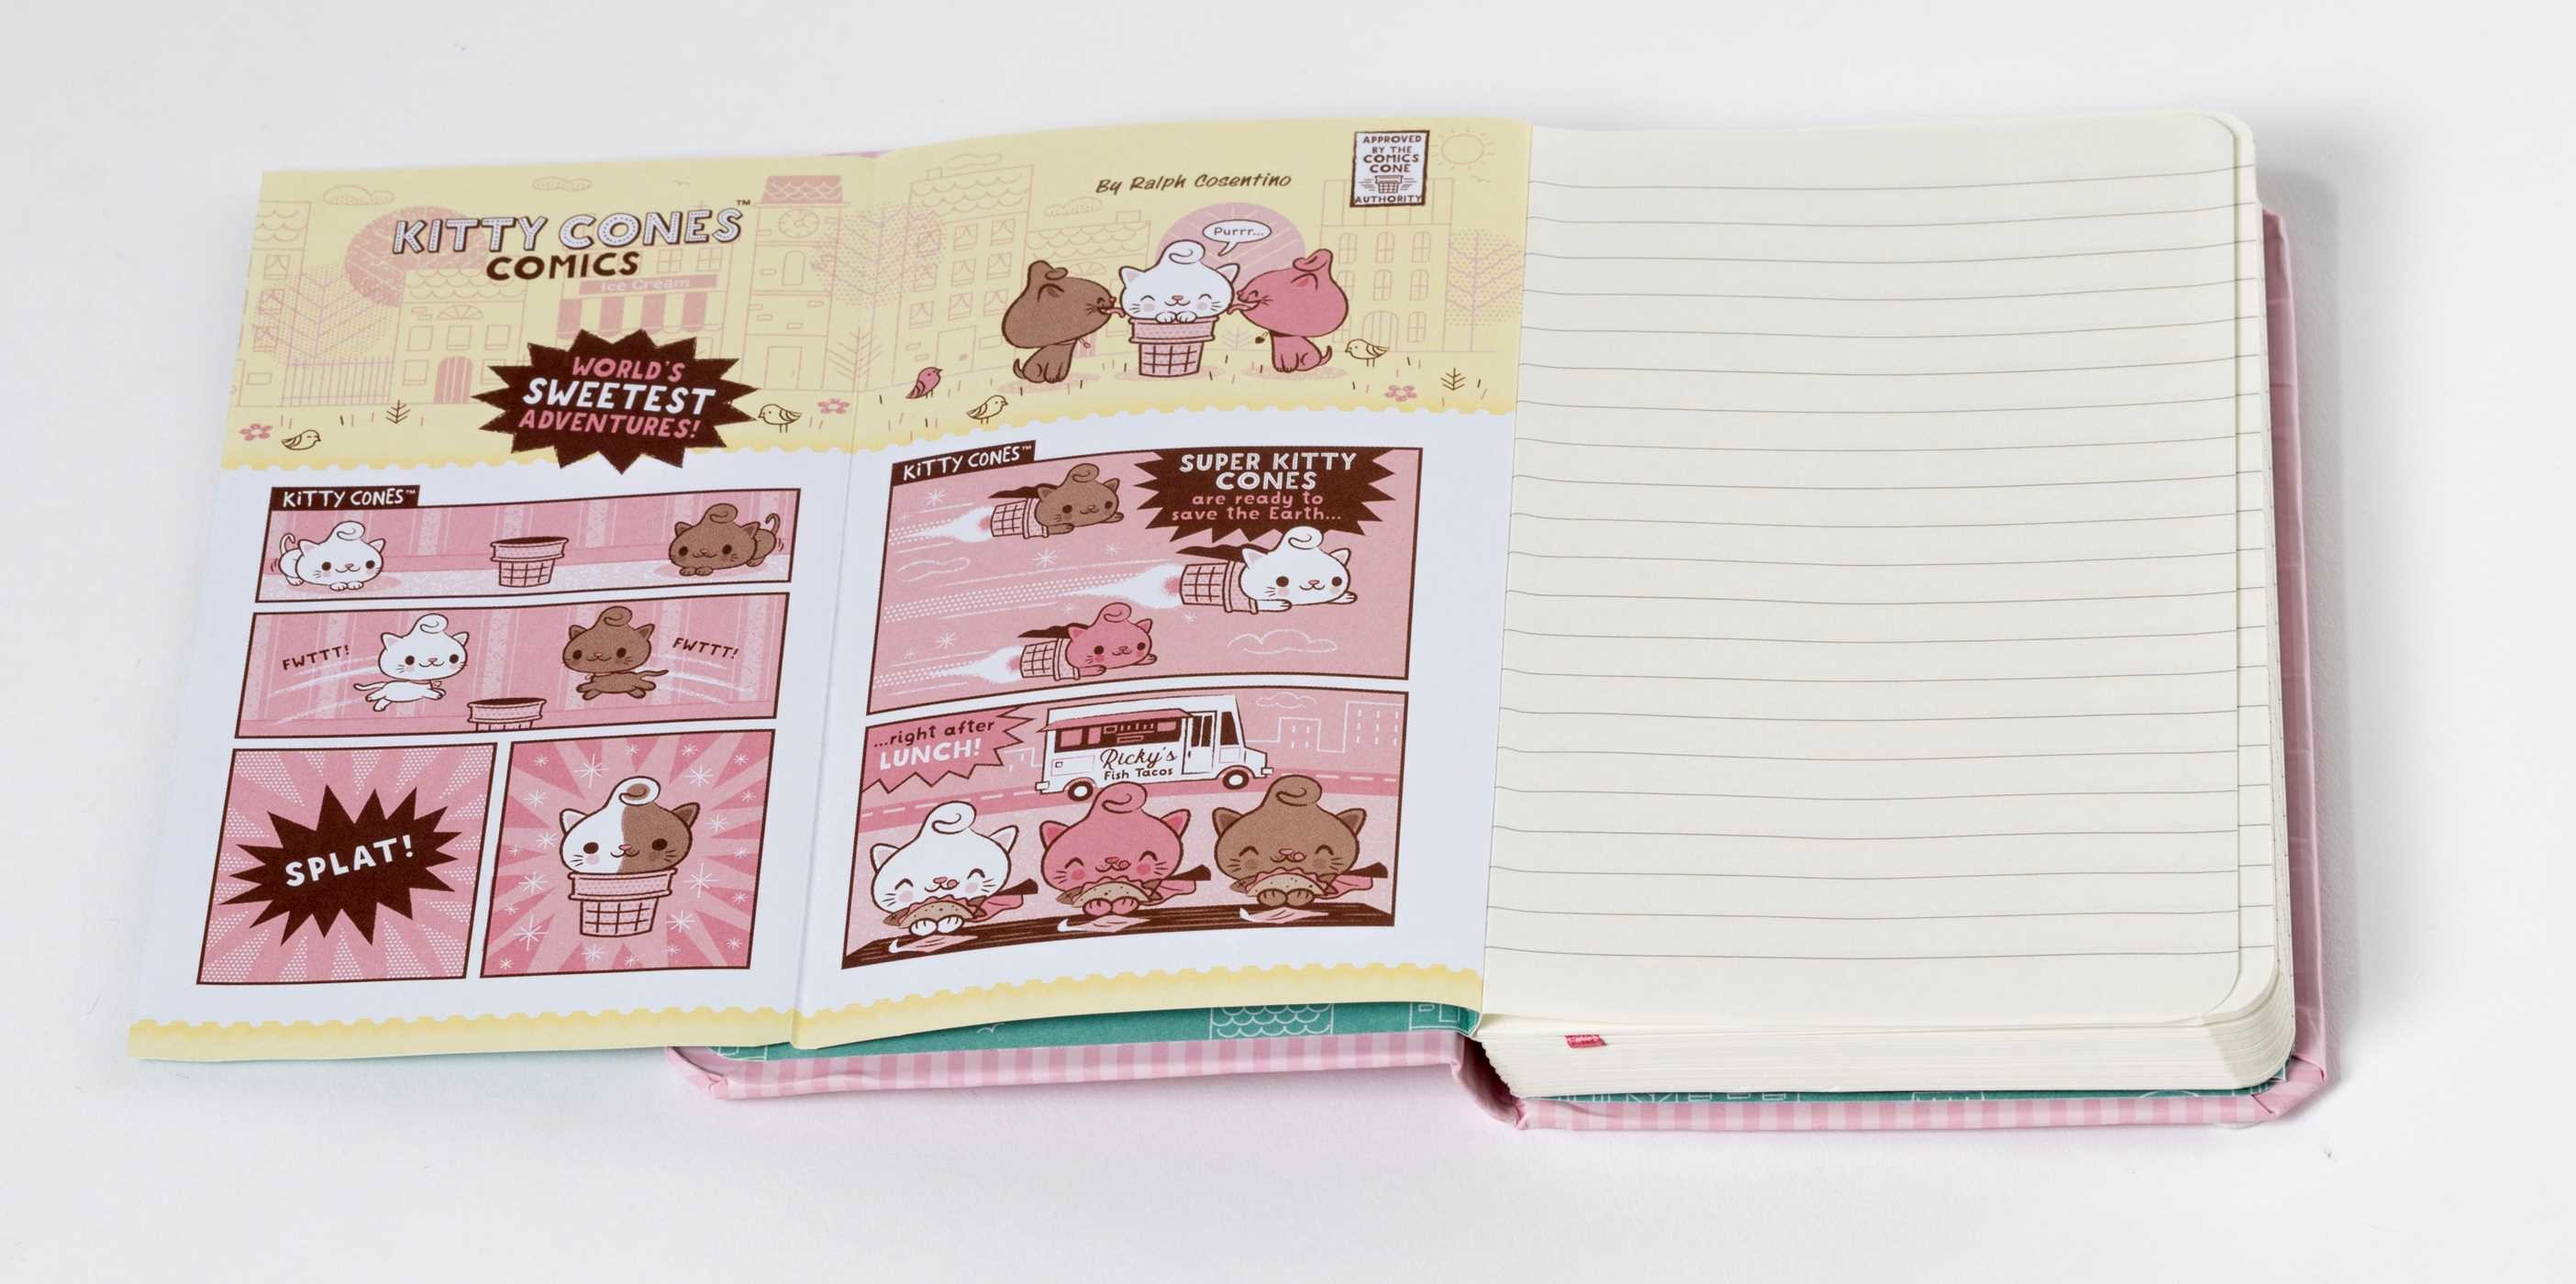 Kitty cones ruled pocket journal 9781683832386.in06